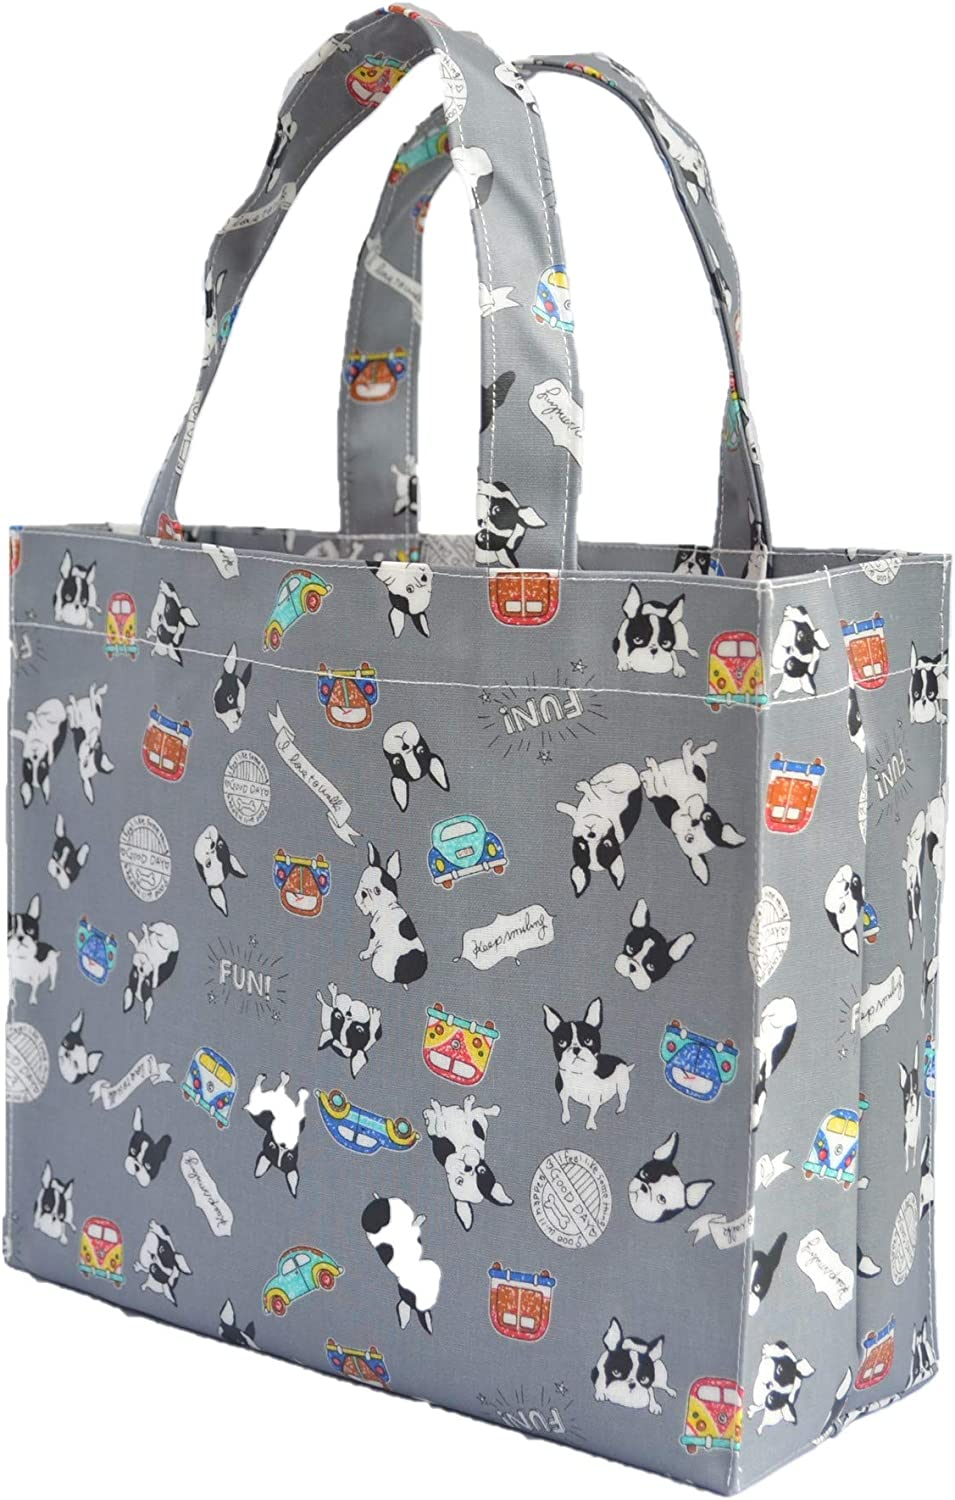 Lunch Bag Gym bag PVC-coated Tote Bags Oilcloth tote Shopping Bag Small Bookbag Tote Bag